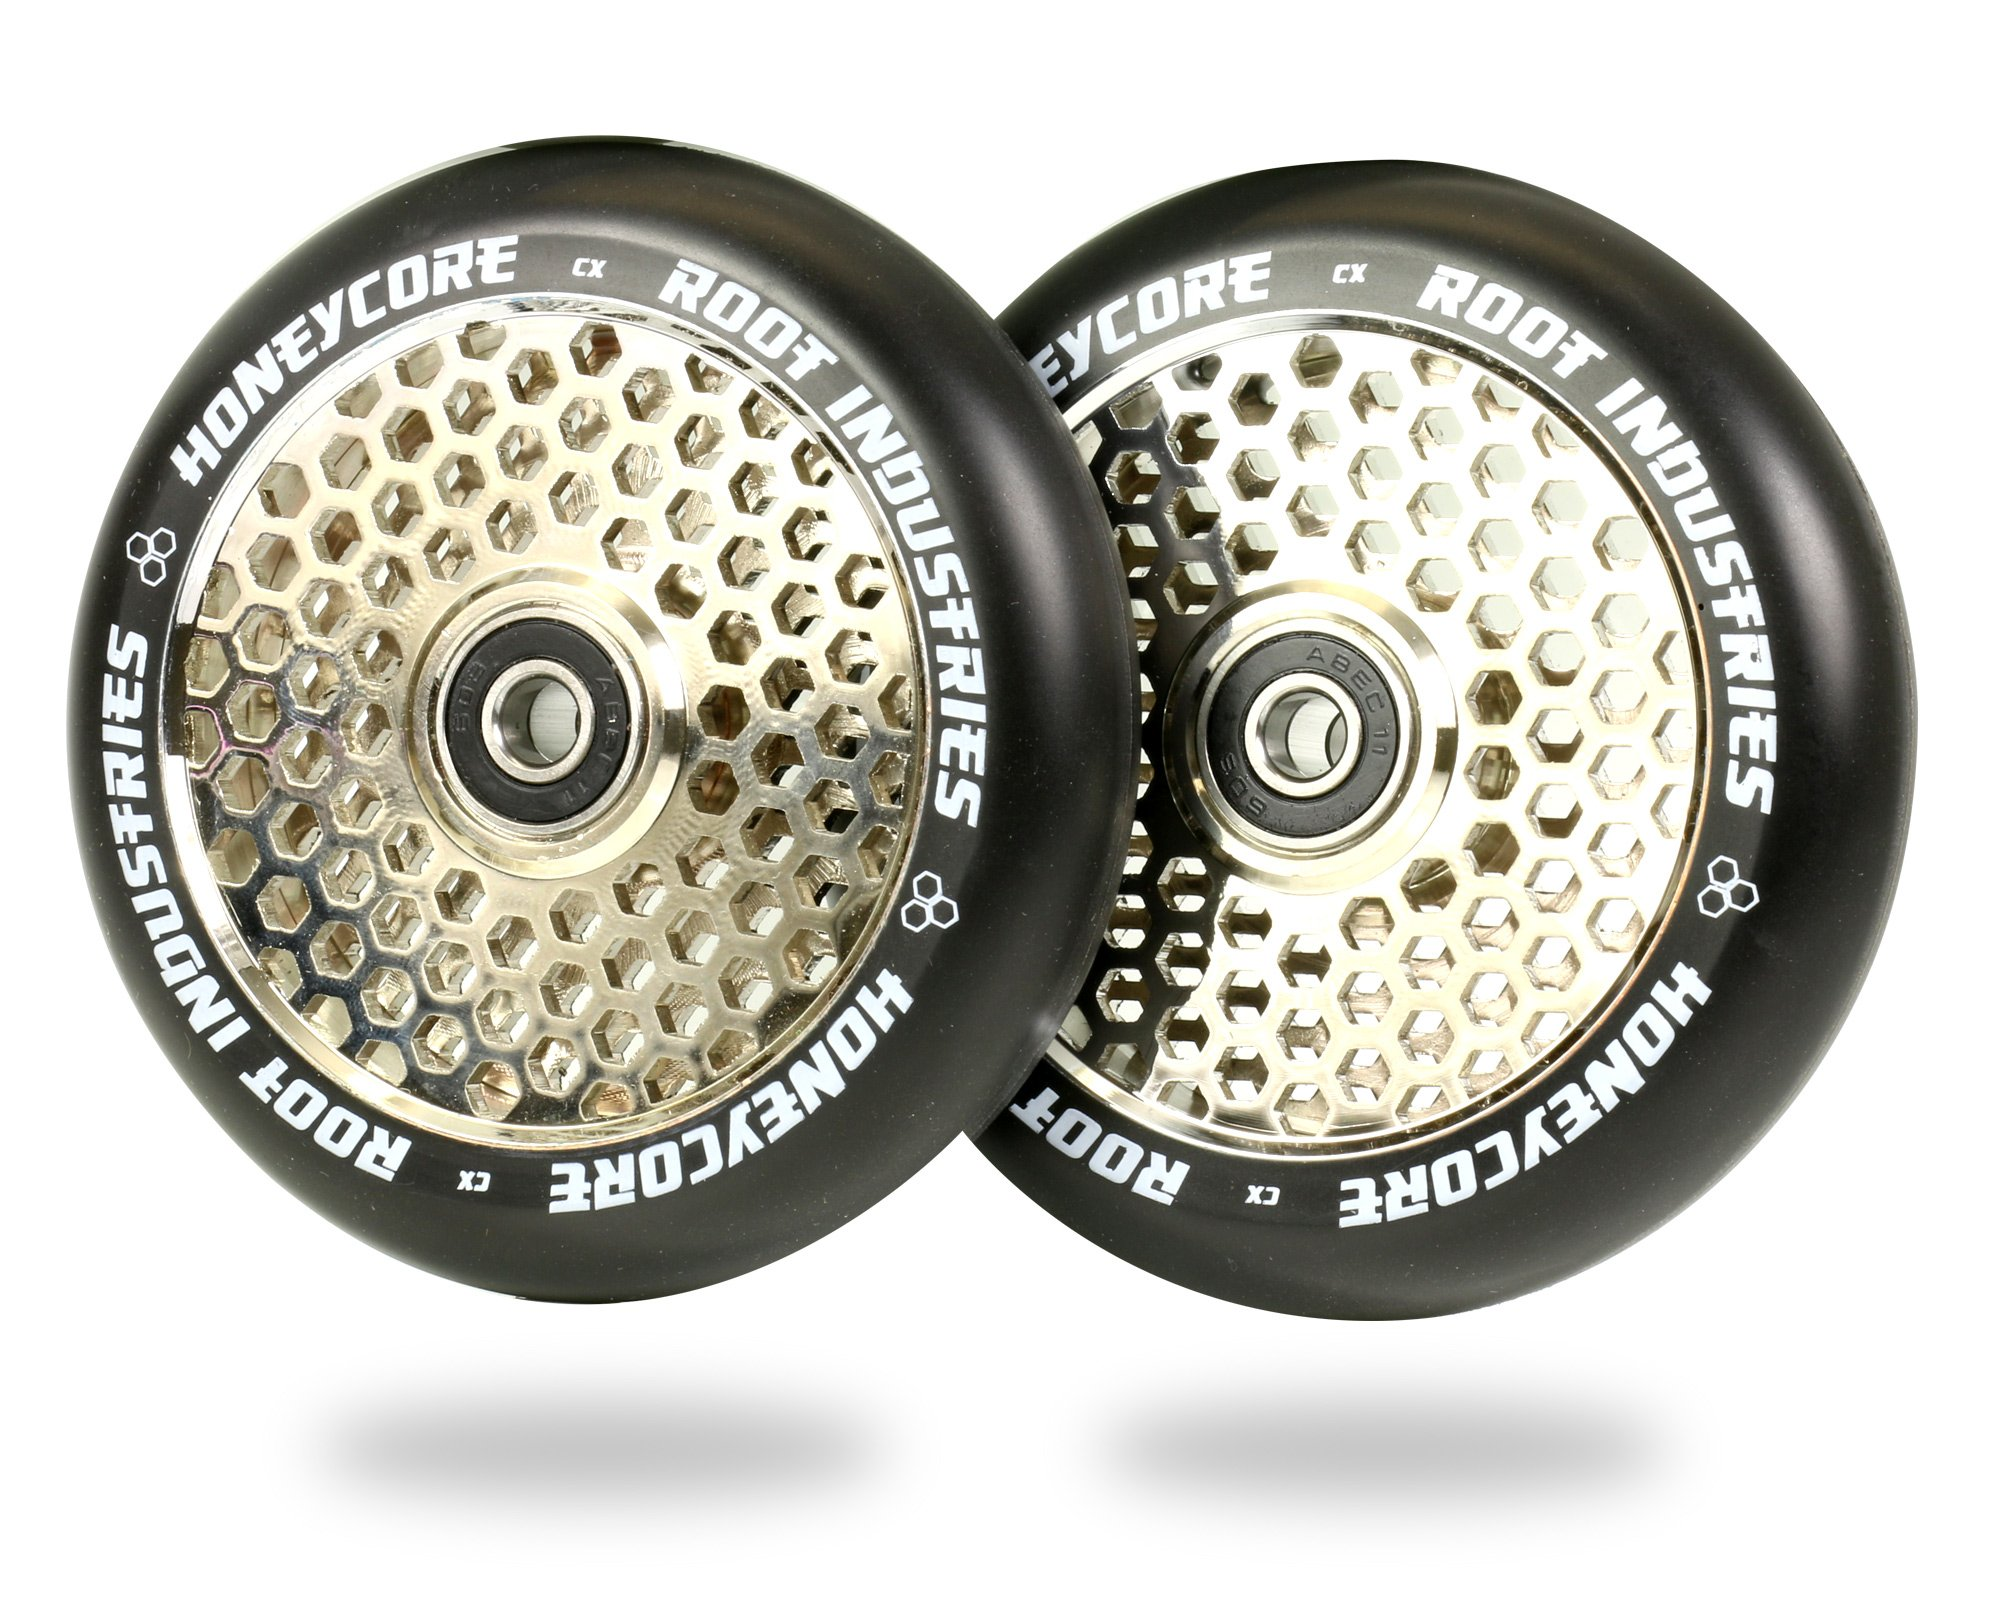 Root Industries 110mm Honeycore Wheels - Black Urethane (Pair) (Black/Mirror)